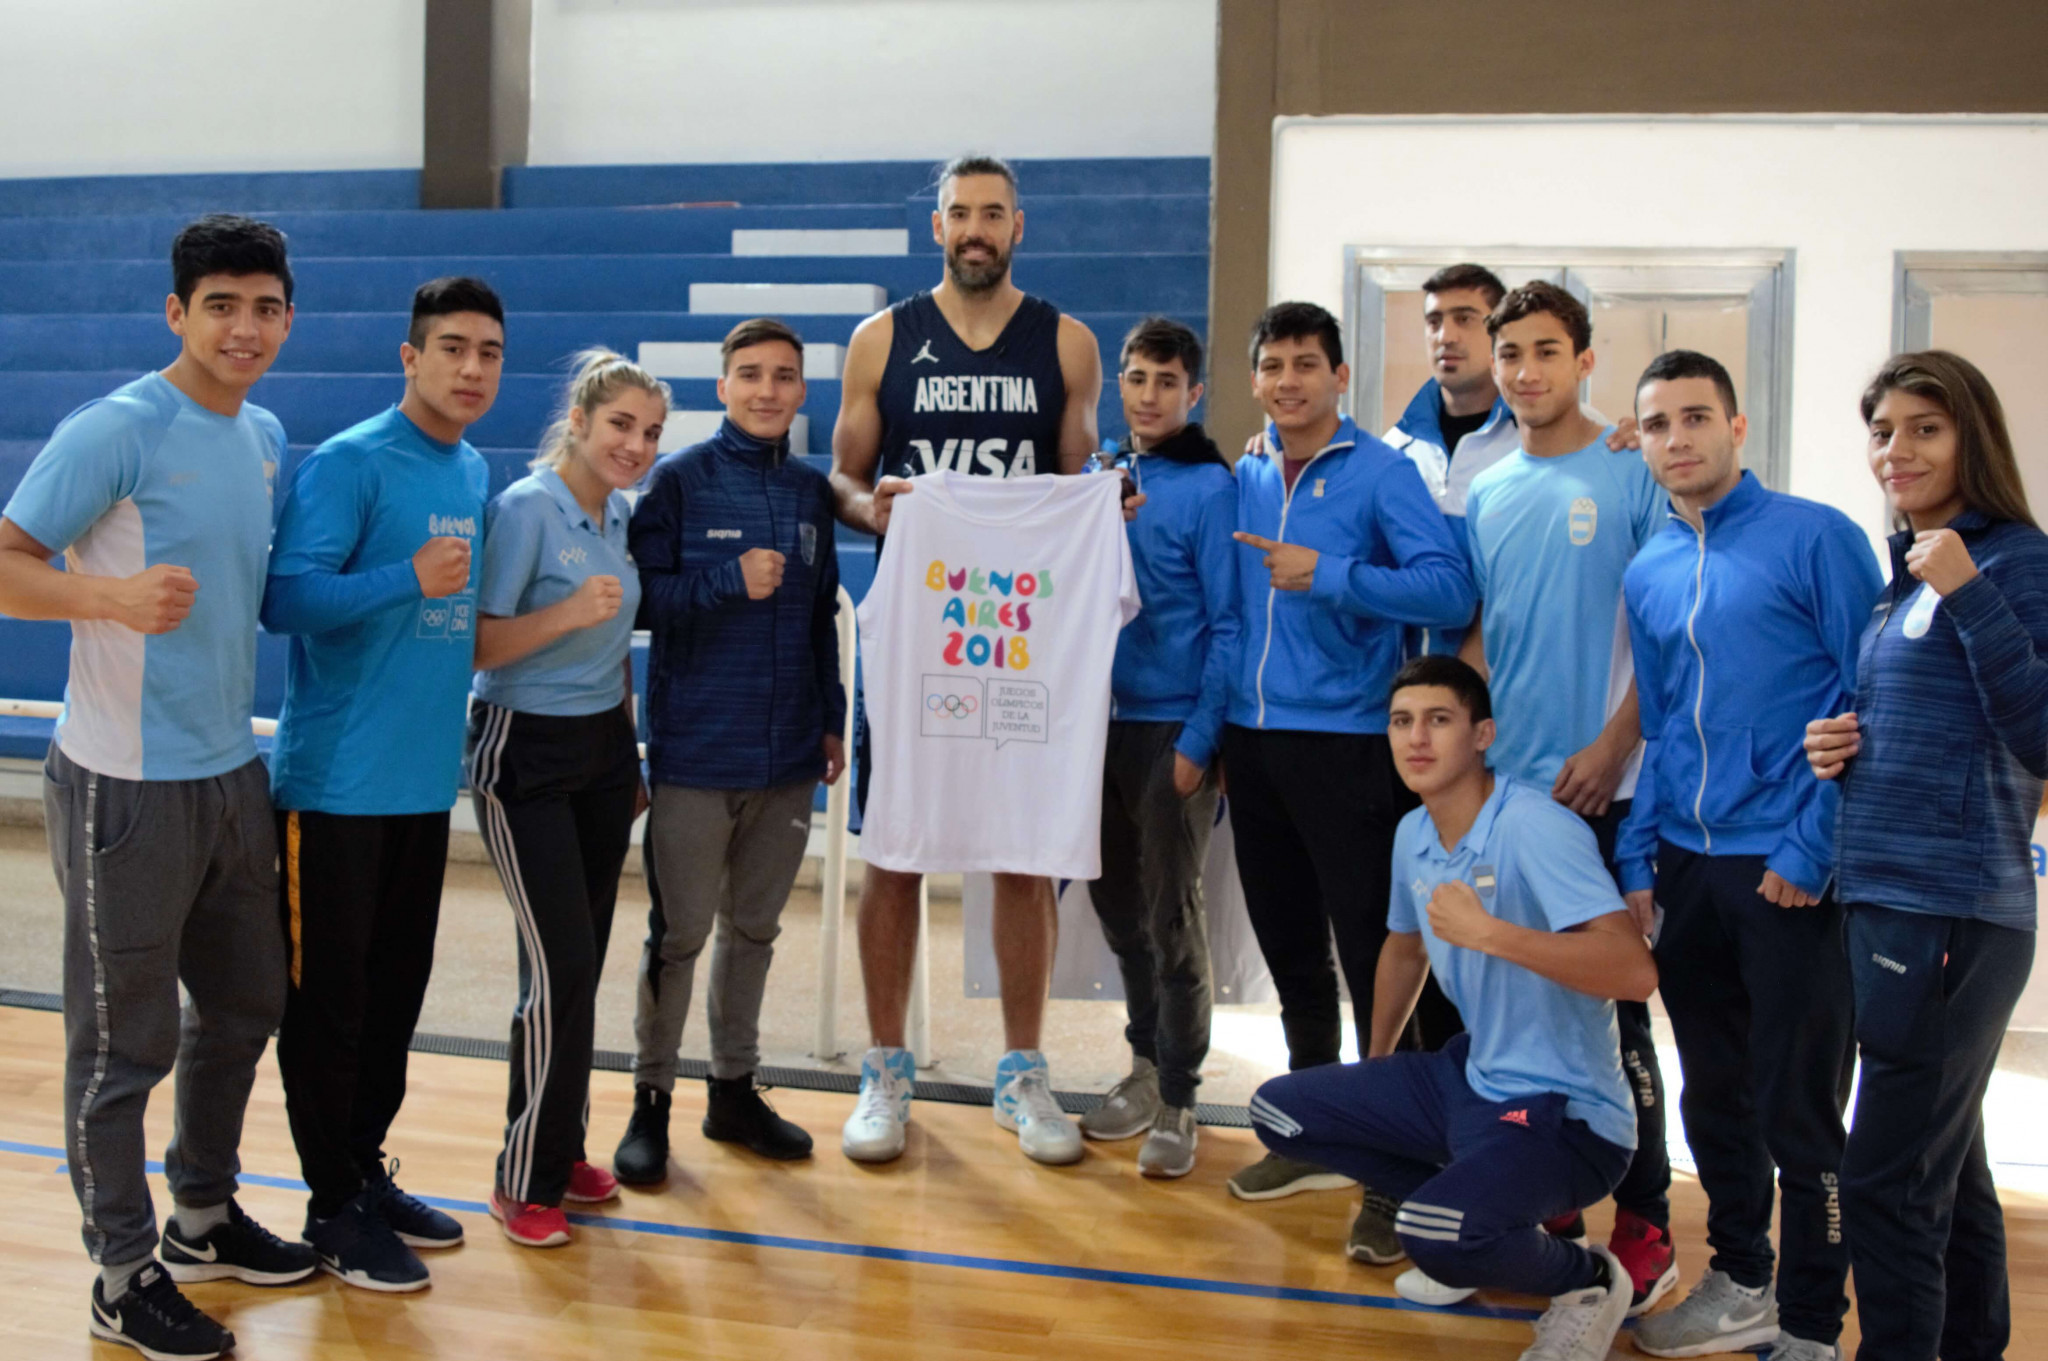 Buenos Aires 2018 boxing hopefuls receive special visit from Scola